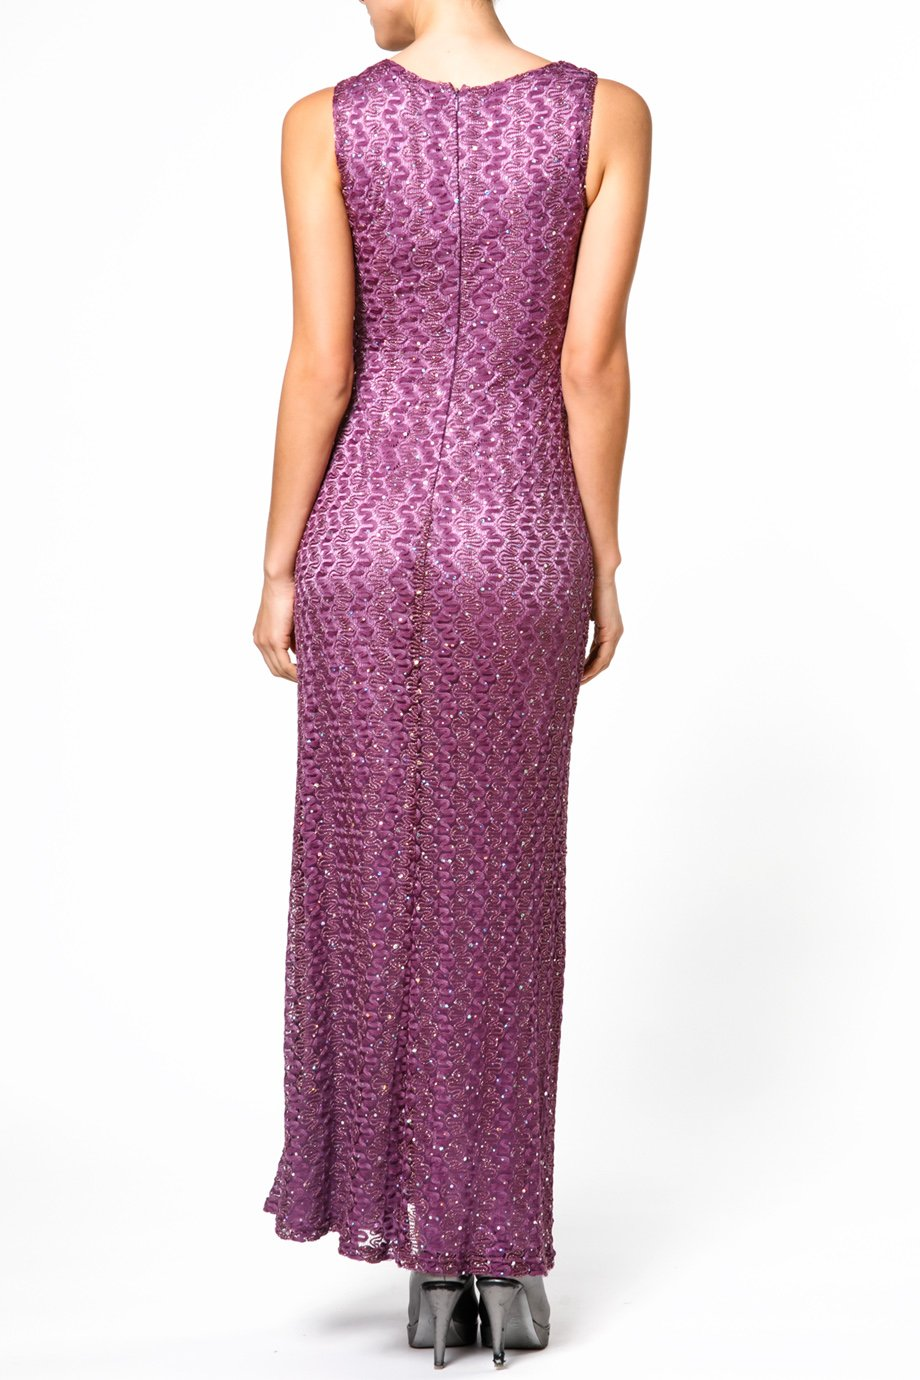 David Meister Purple Sparkle Sleeveless Knit Gown